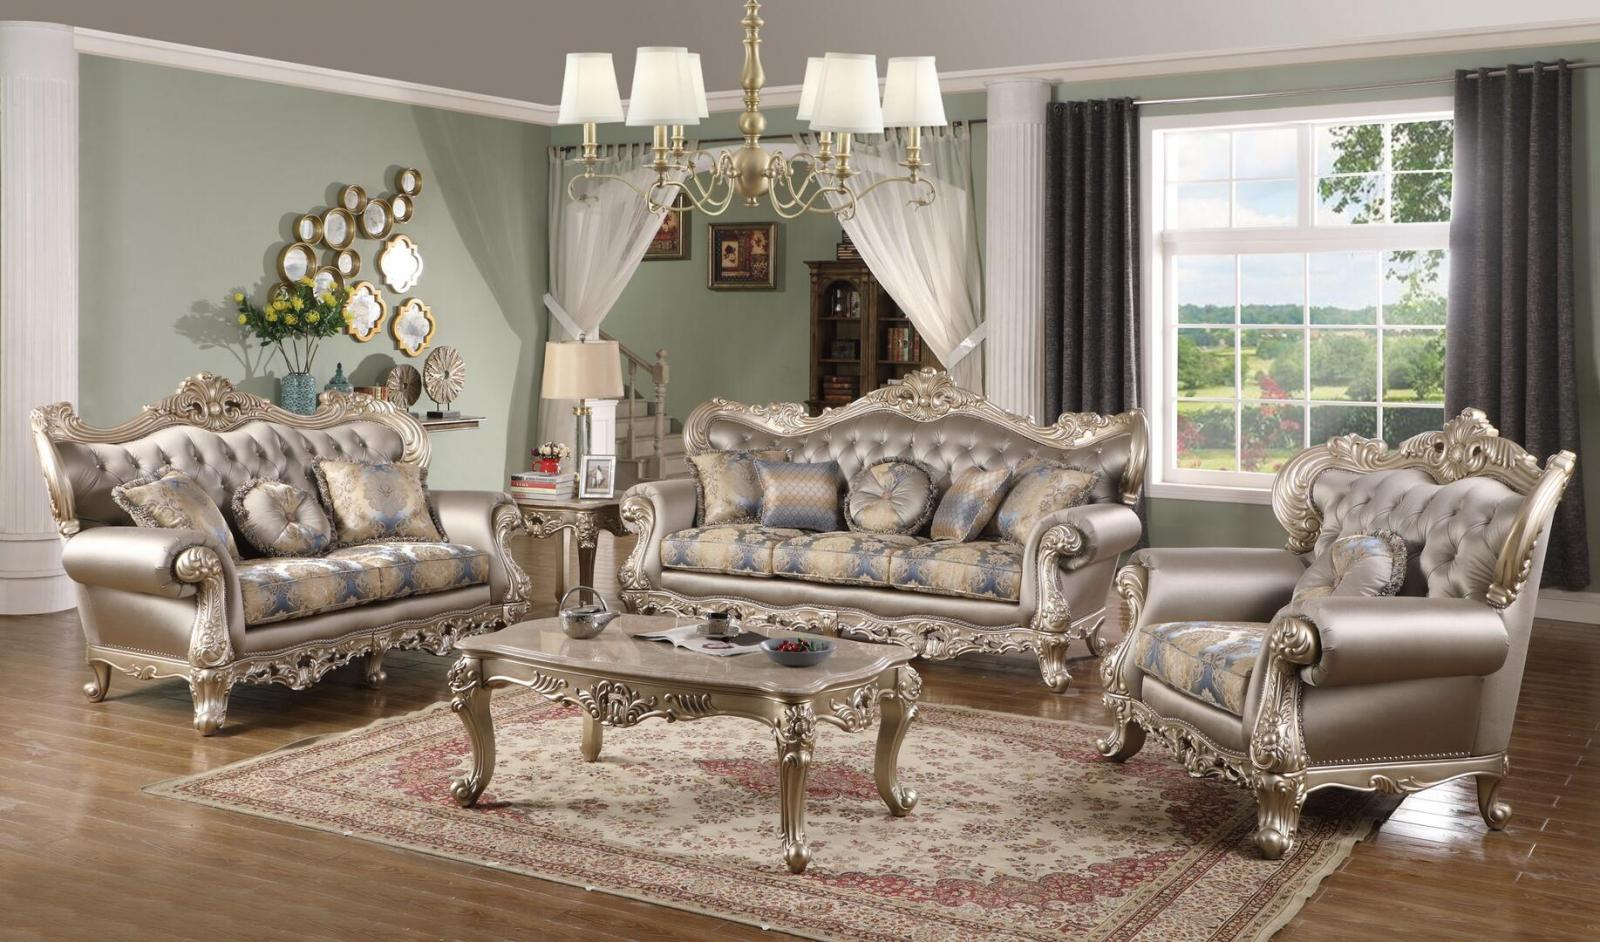 Transitional Silver Faux Leather Sofa Loveseat Chair and Coffee Table 4 pcs Cosmos Furniture Ariel-Set-4